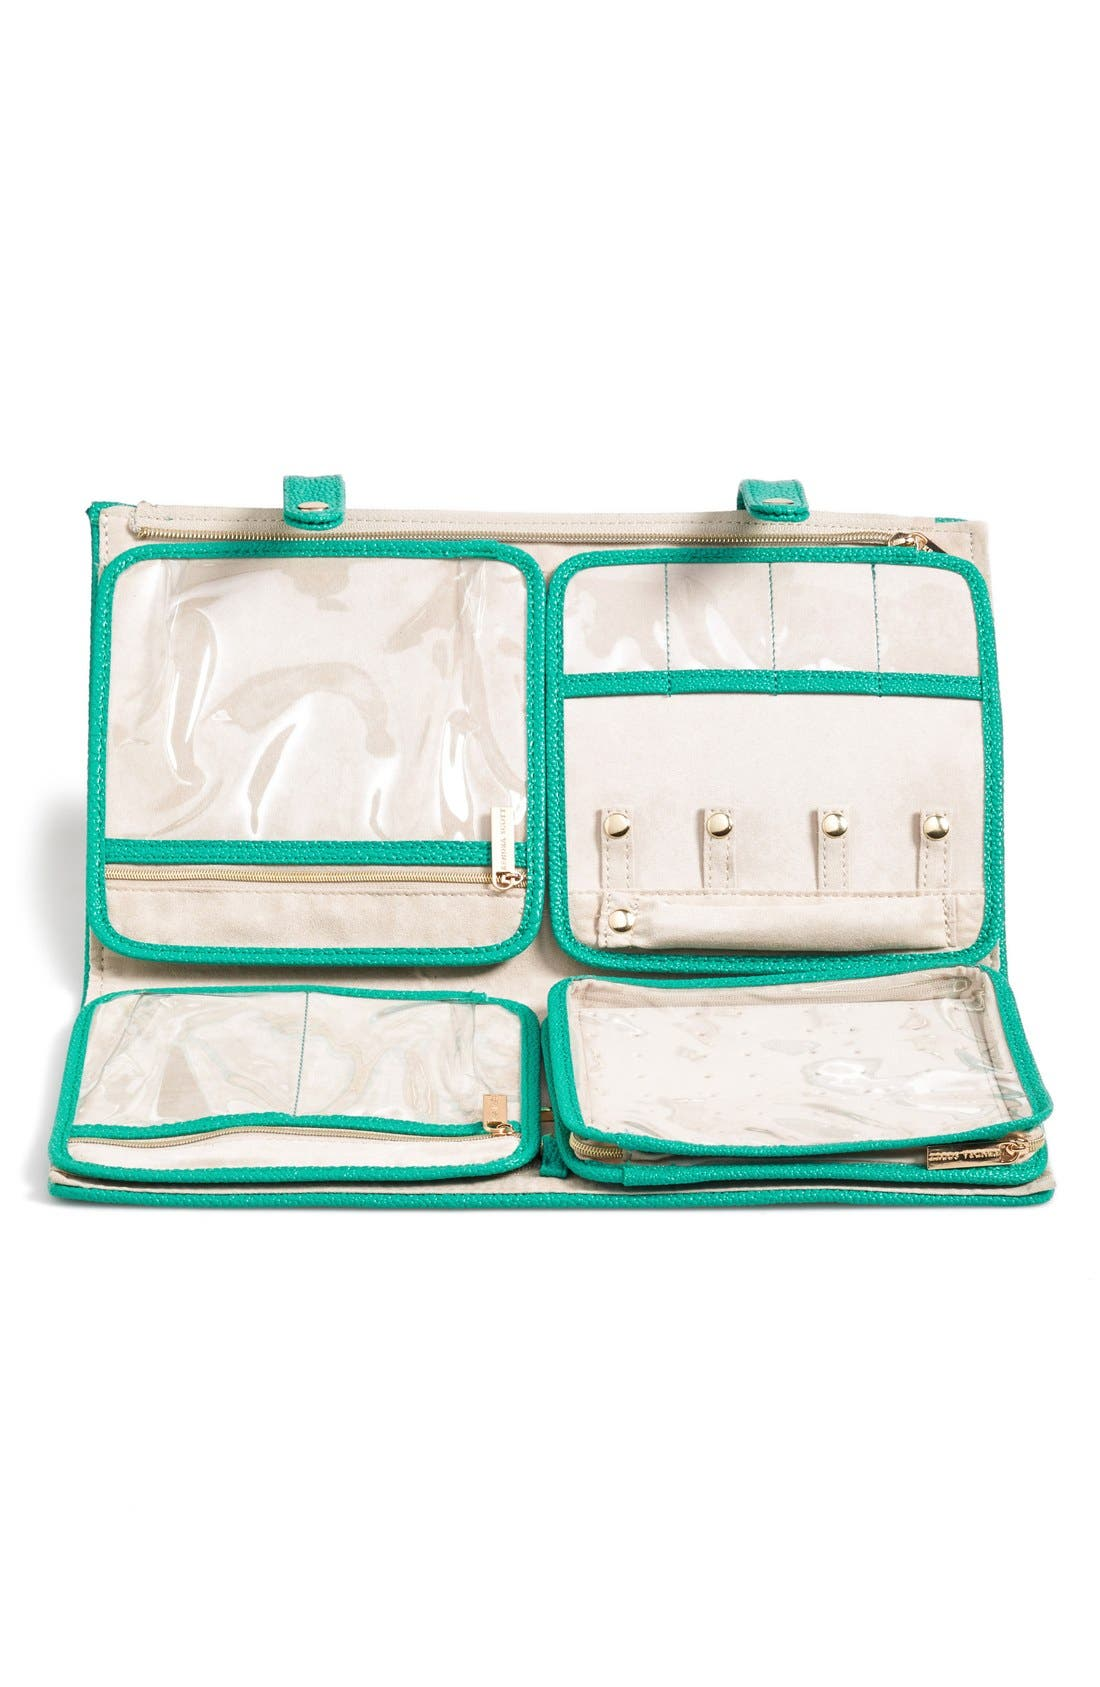 Alternate Image 3  - Kendra Scott 'Jet Set' Large Jewelry Organizer